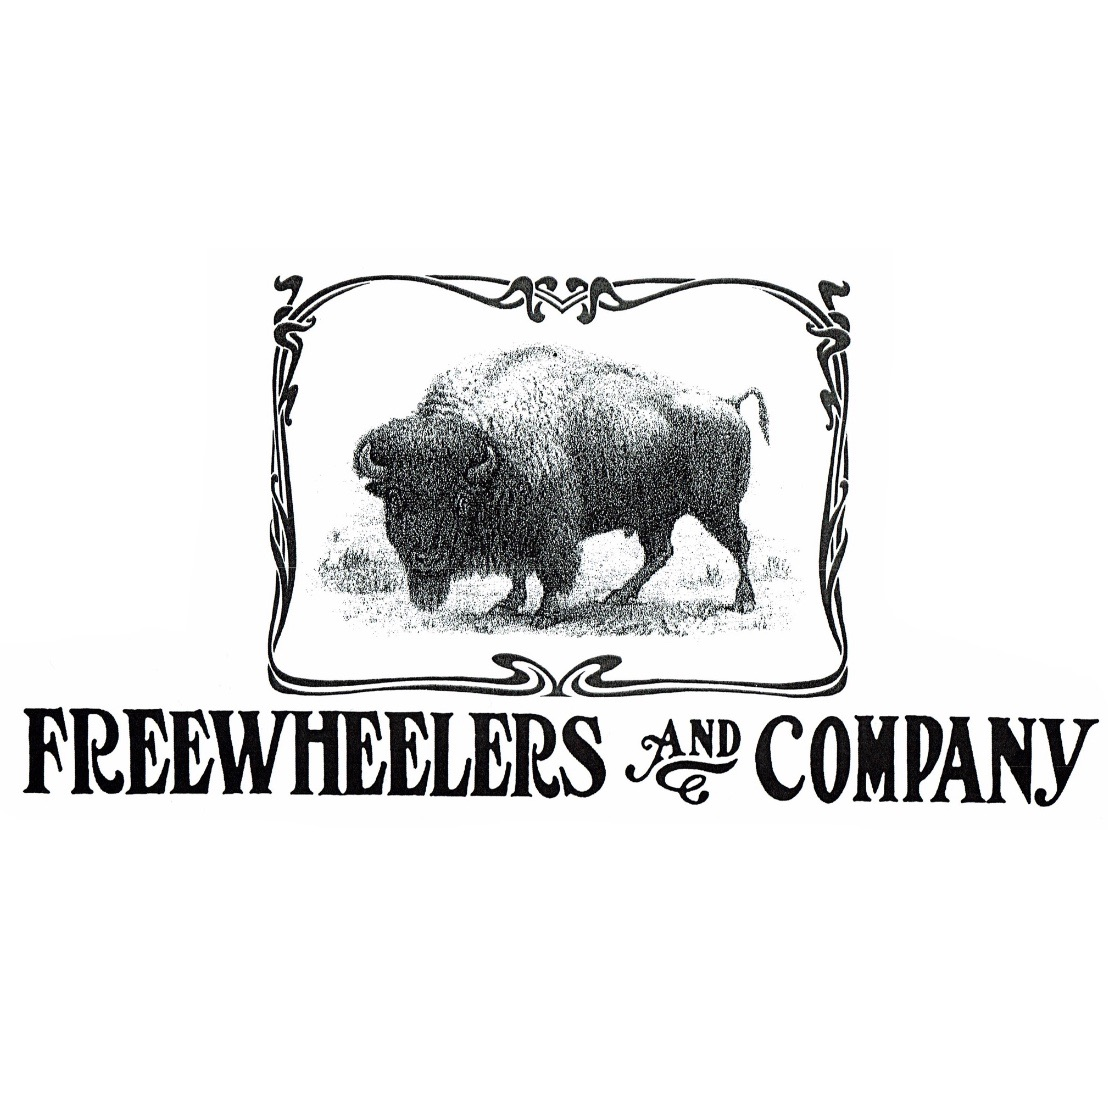 画像1: FREEWHEELERS & CO. (1)